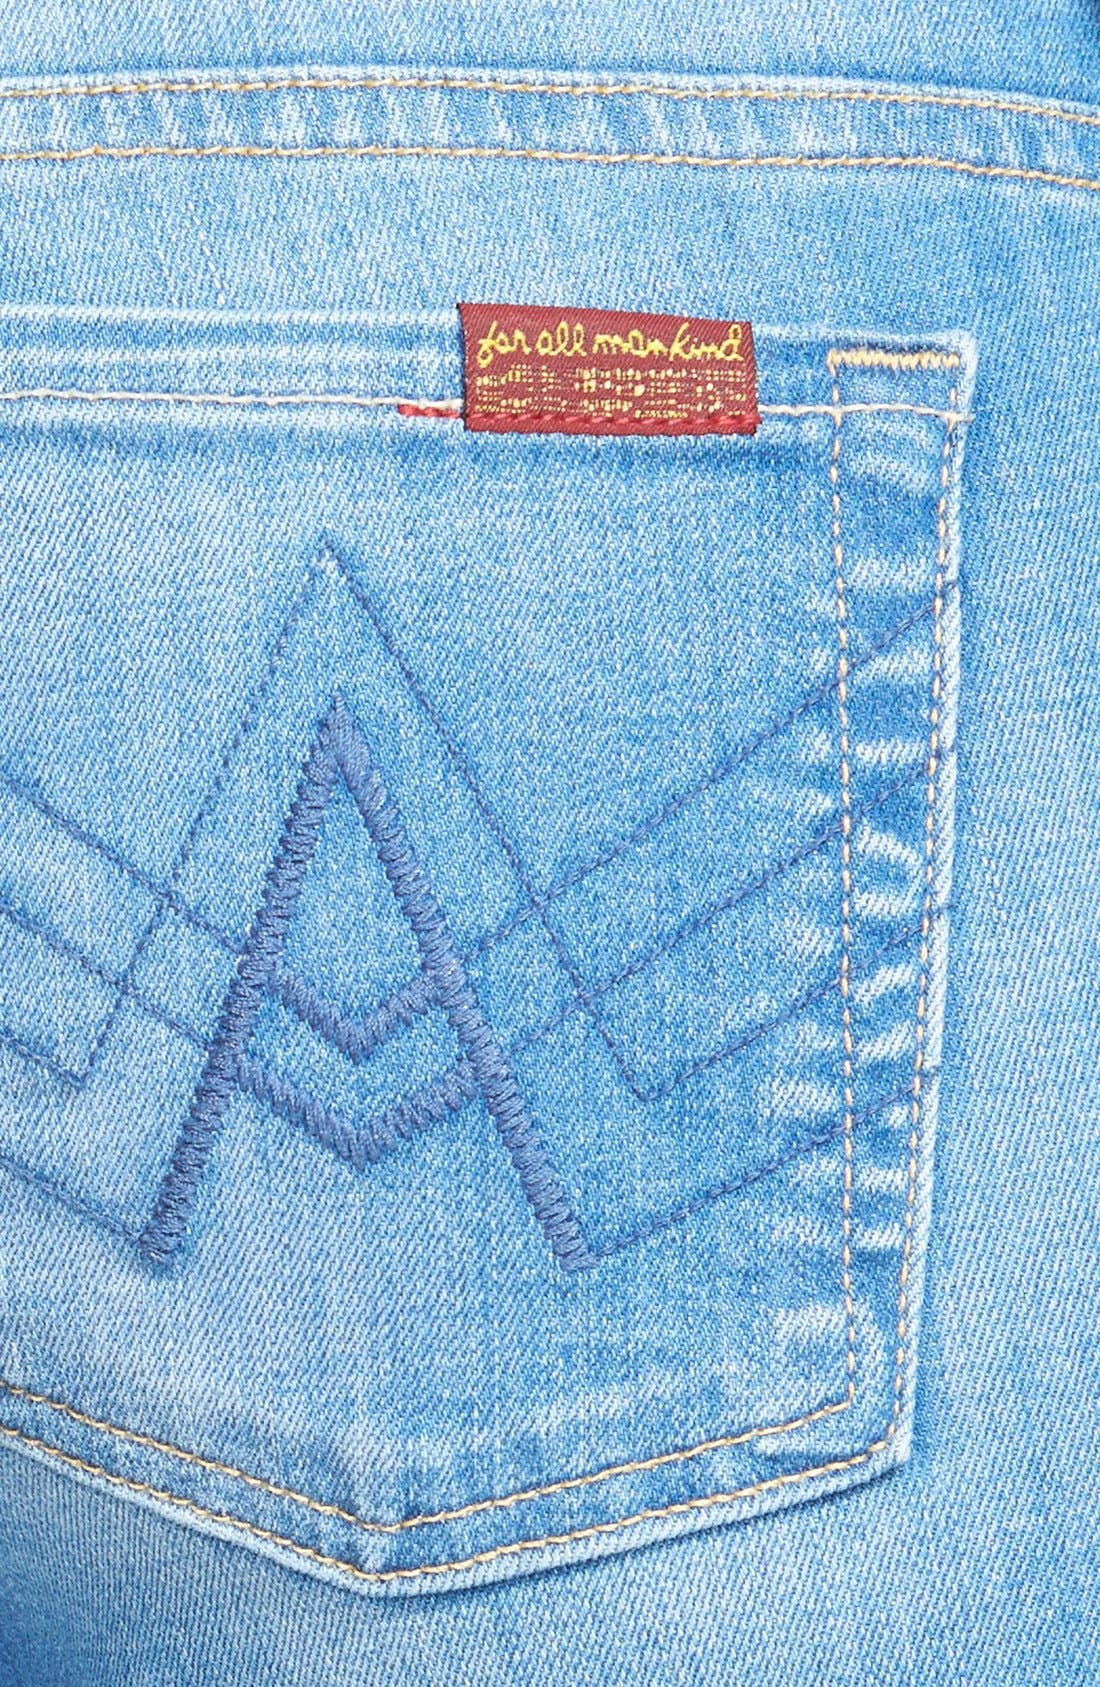 Alternate Image 3  - 7 For All Mankind® 'A-Pocket' Bootcut Jeans (Petite) (Dutch Blue)